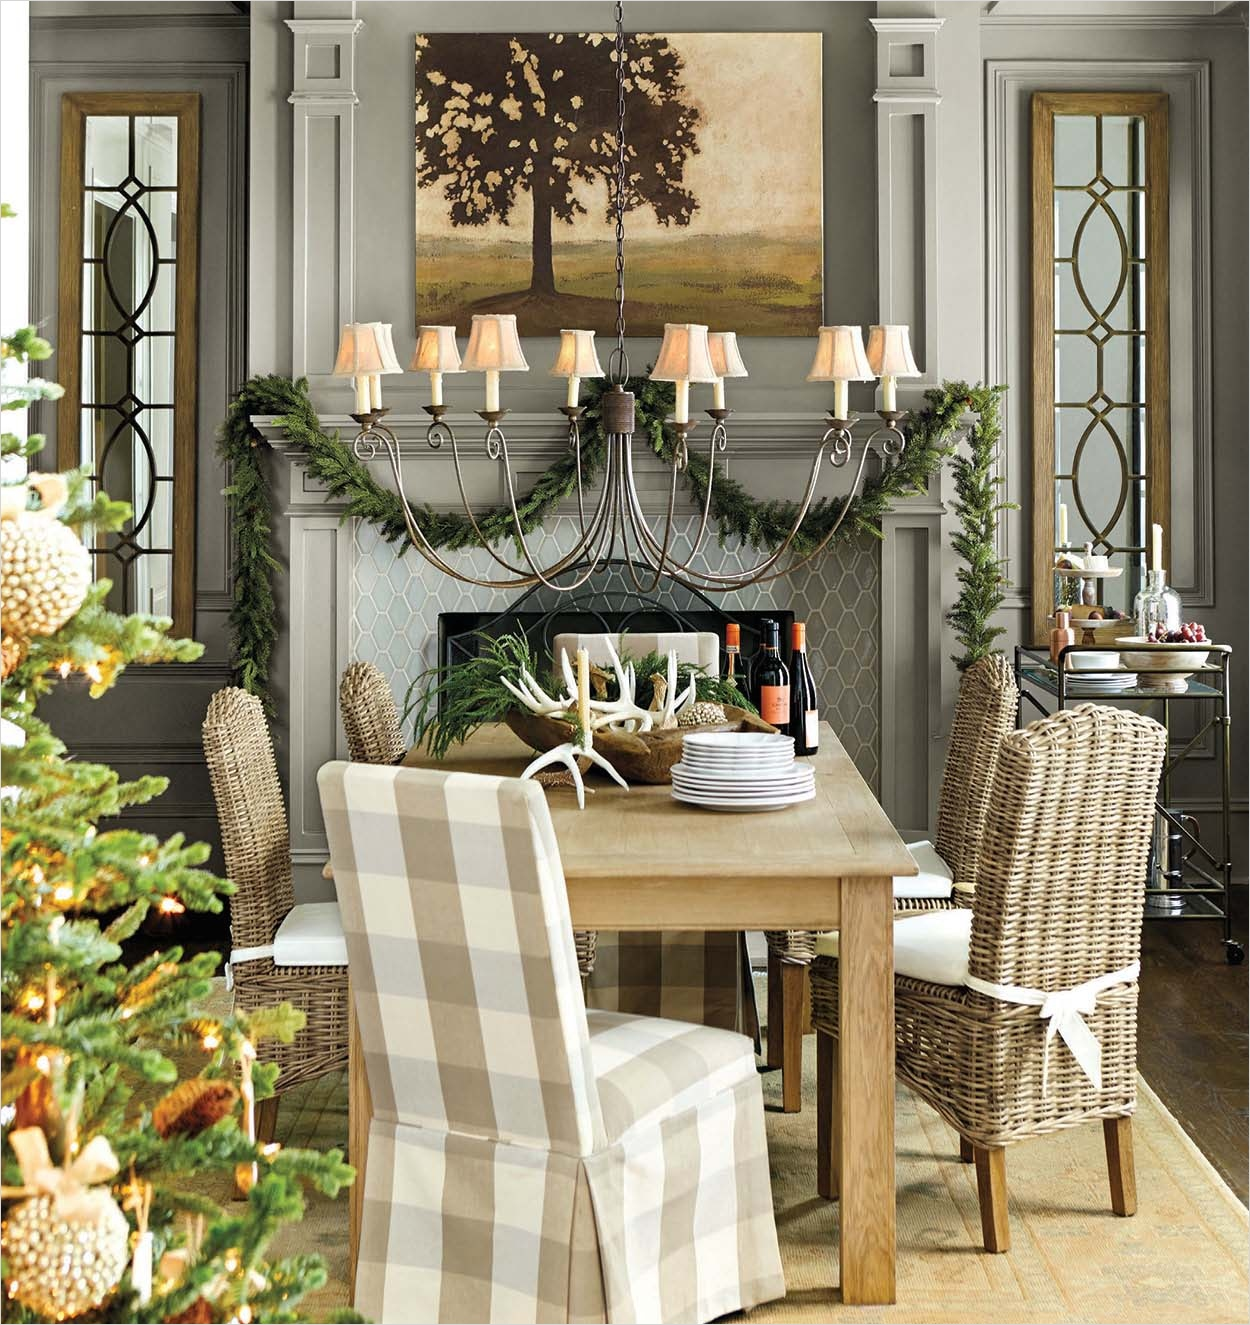 41 Amazing Country Christmas Decorating Ideas 31 40 Fabulous Rustic Country Christmas Decorating Ideas 3